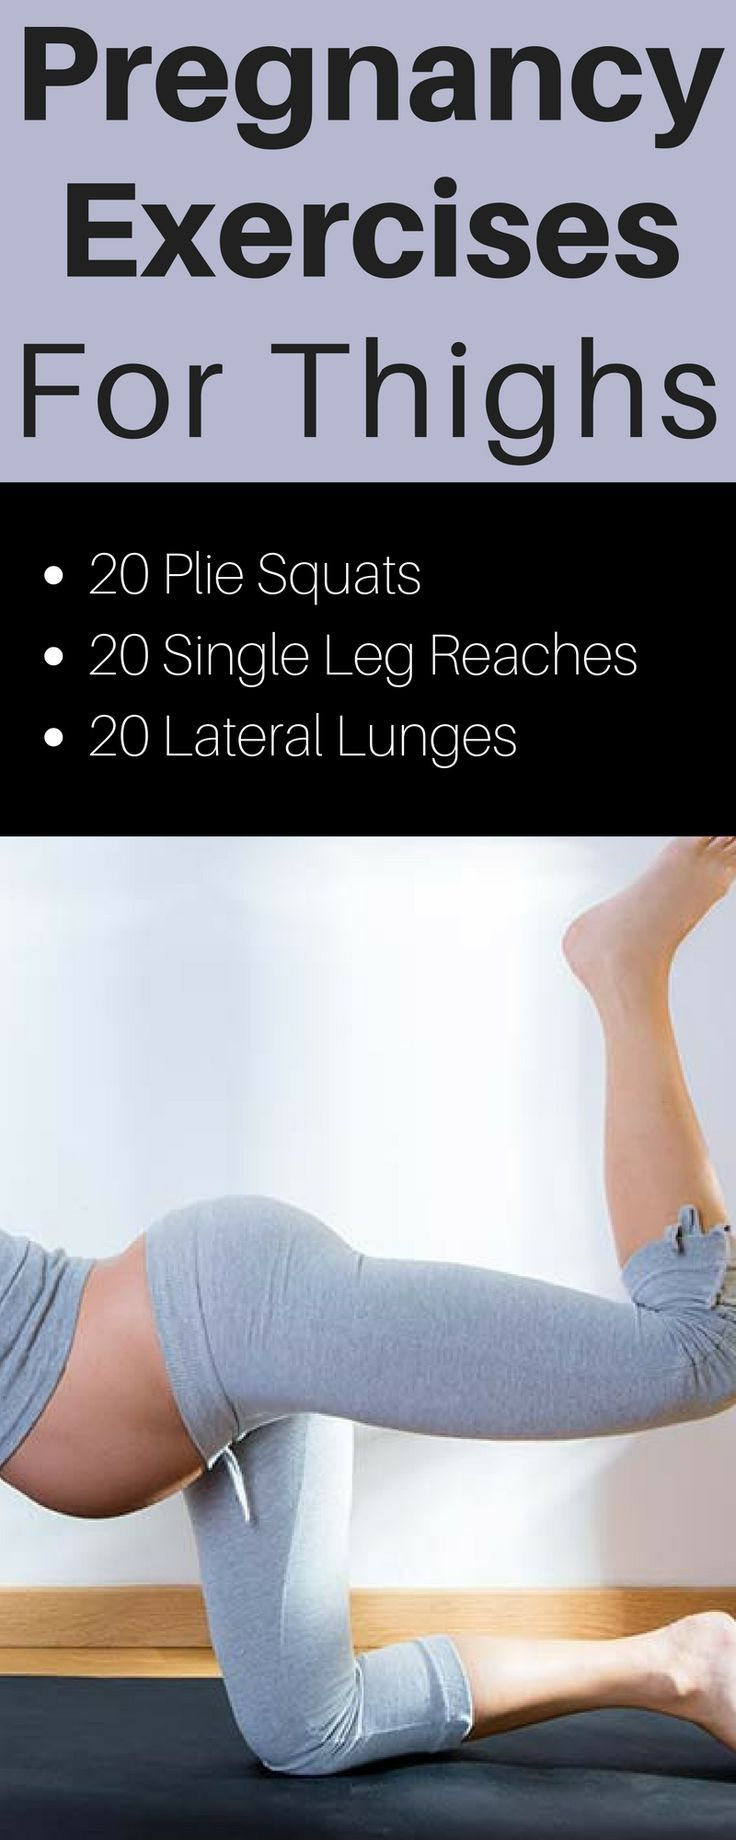 Pregnancy exercises to tone the thighs.  No gym required.